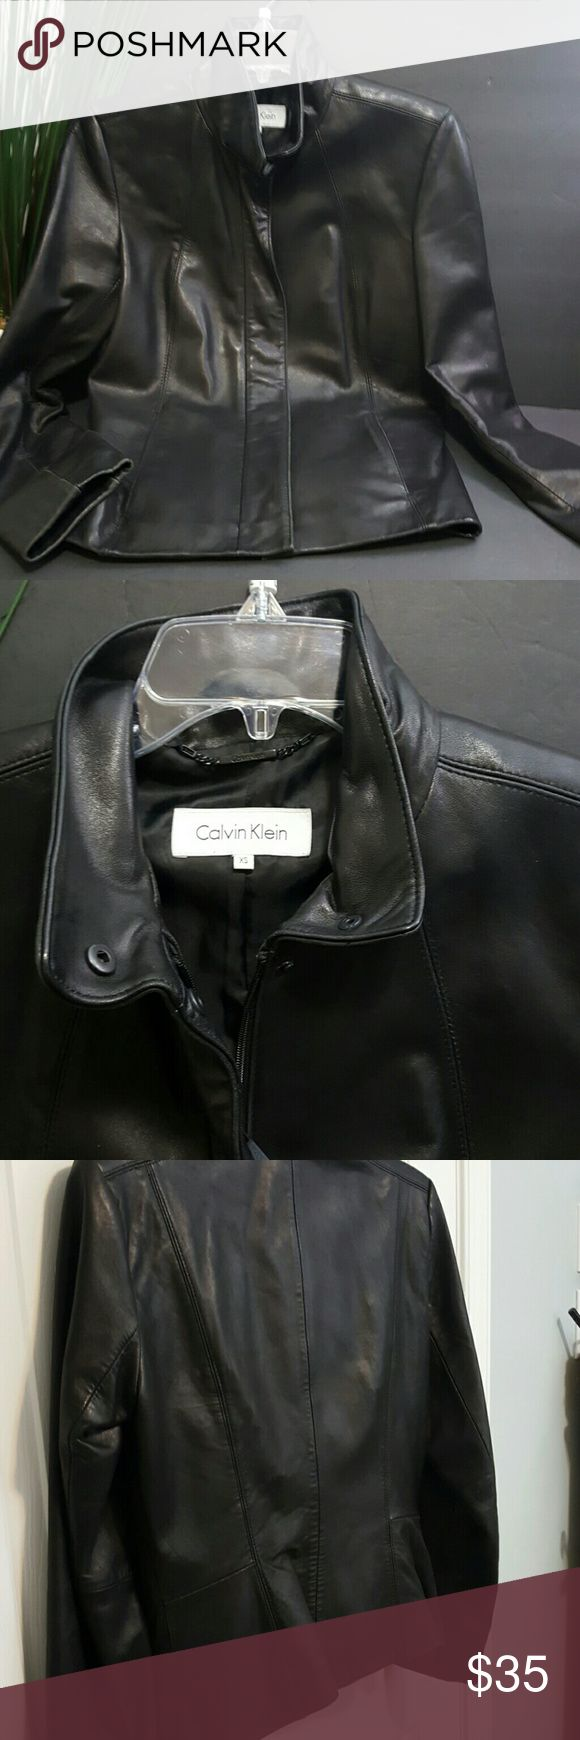 Leather jacket xs - Calvin Klein Leather Jacket Xs Super Soft Black Leather Zip Close With Snaps Front Pockets Nice